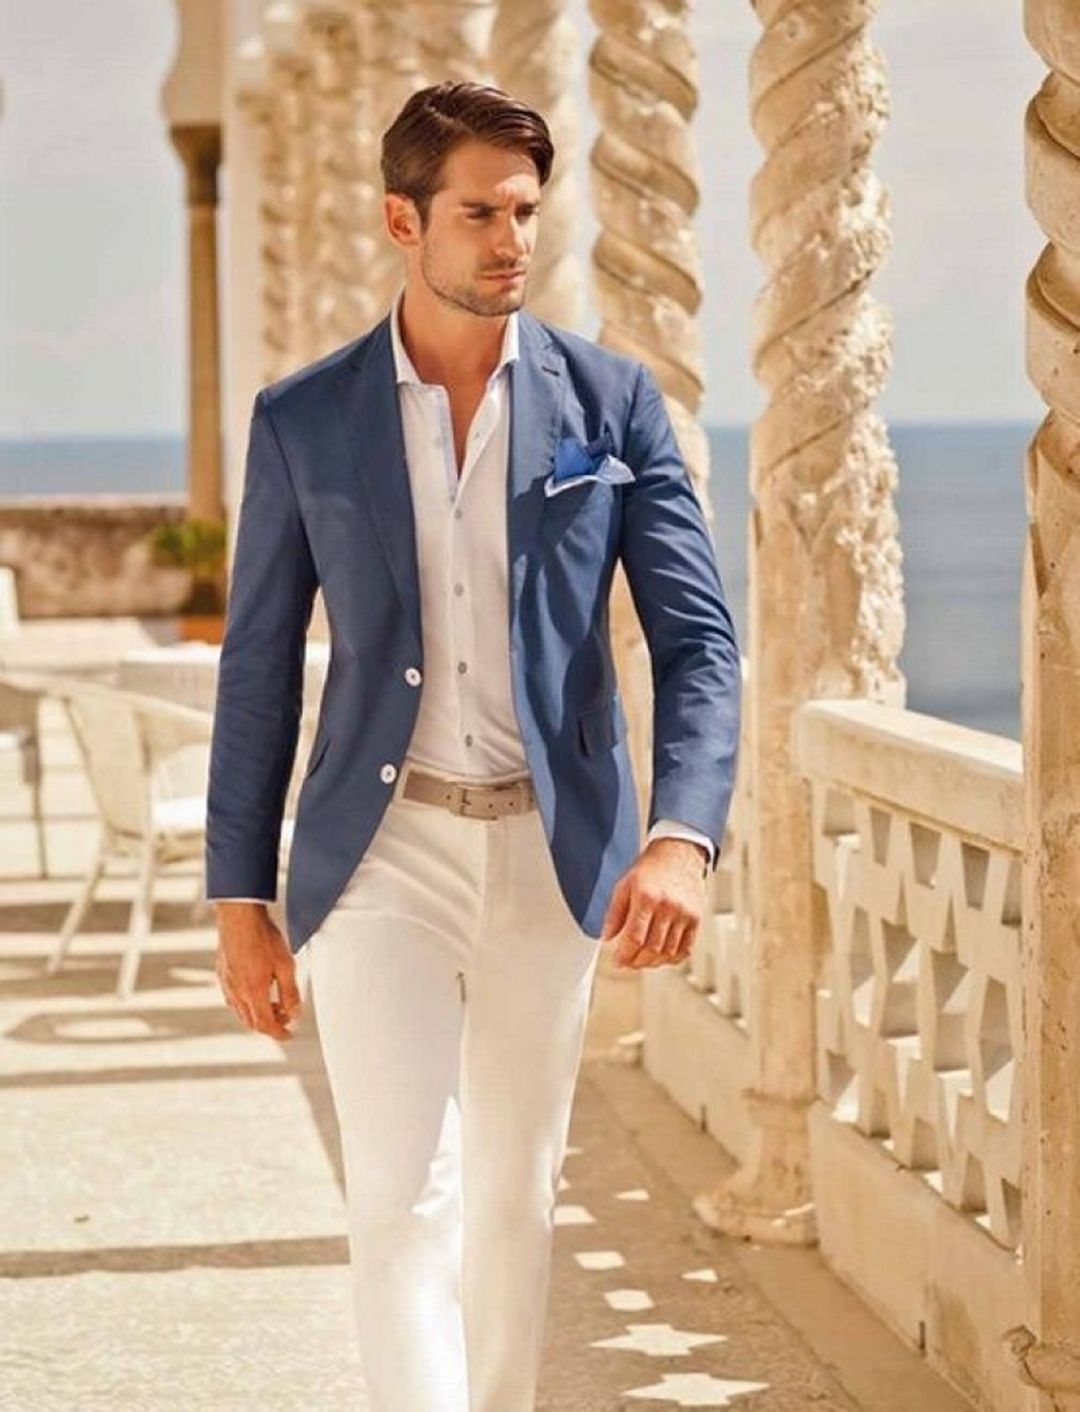 10 Smart Formal Outfit Ideas To Make You Look Cool Fashions Nowadays Wedding Suits Men Summer Suits Men Summer Outfits Men [ 1412 x 1080 Pixel ]